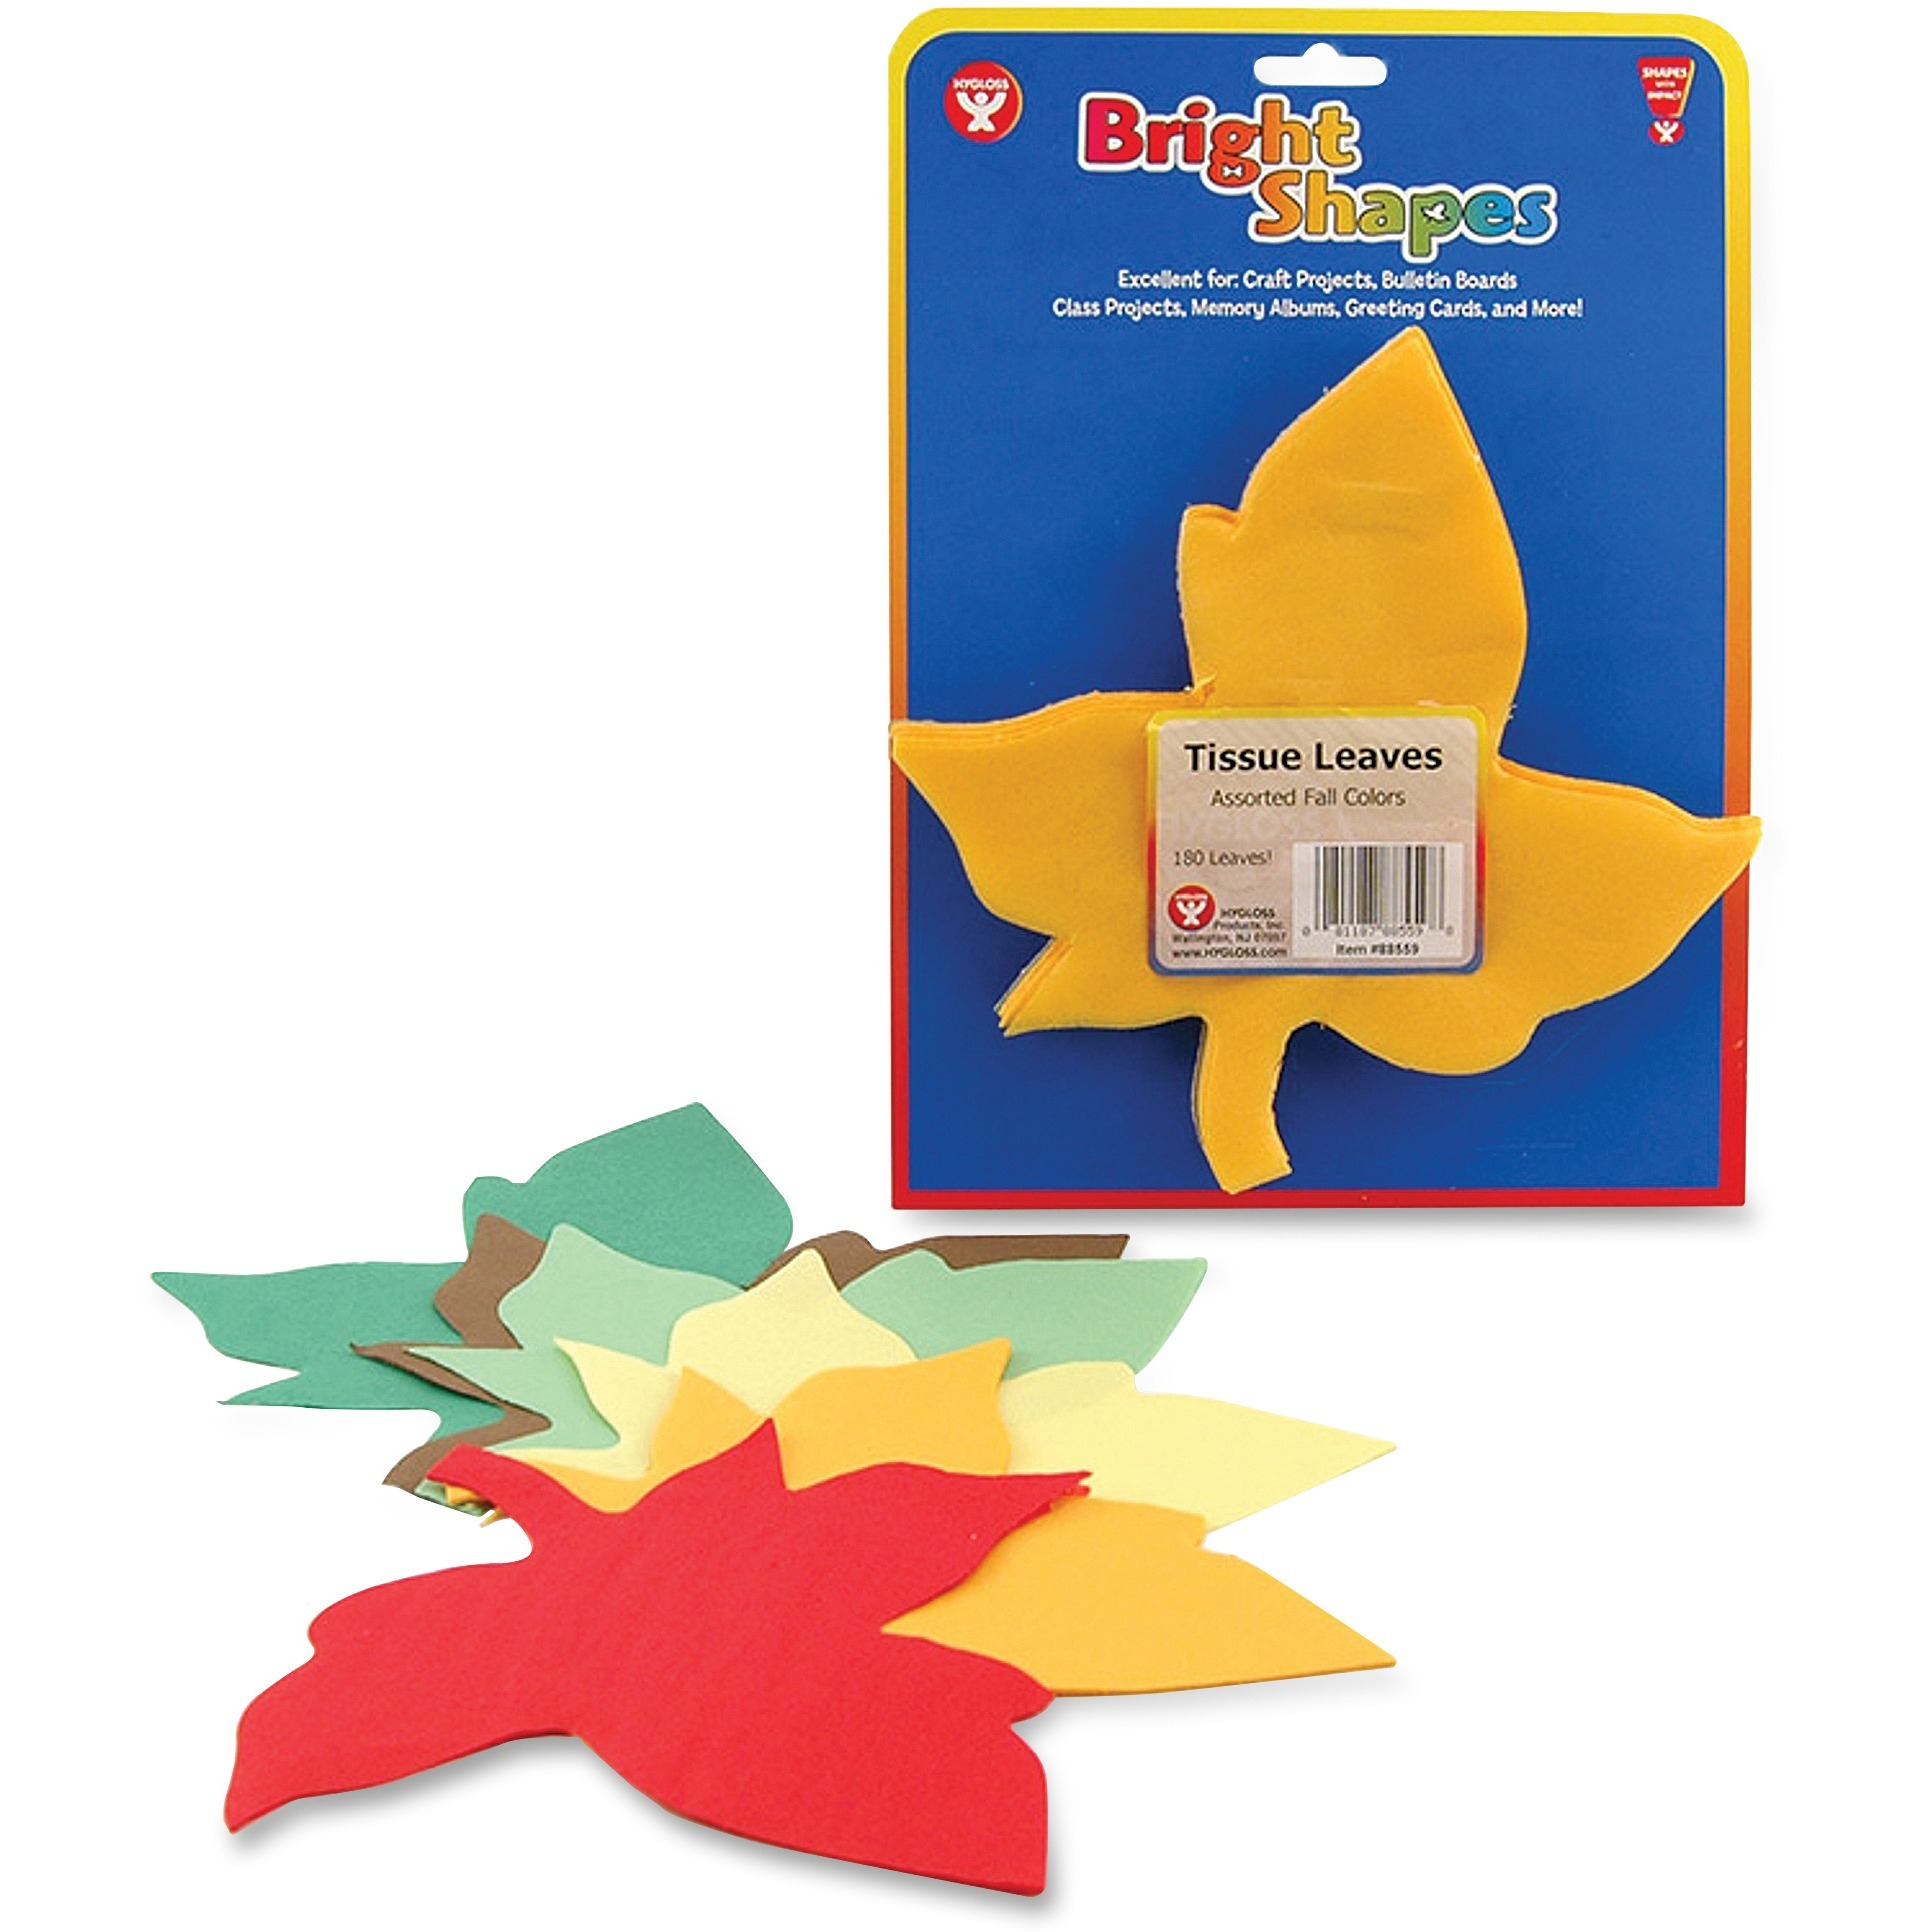 Hygloss, HYX88559, Bright Shapes Color Tissue Leaves, 20 / Pack, Assorted